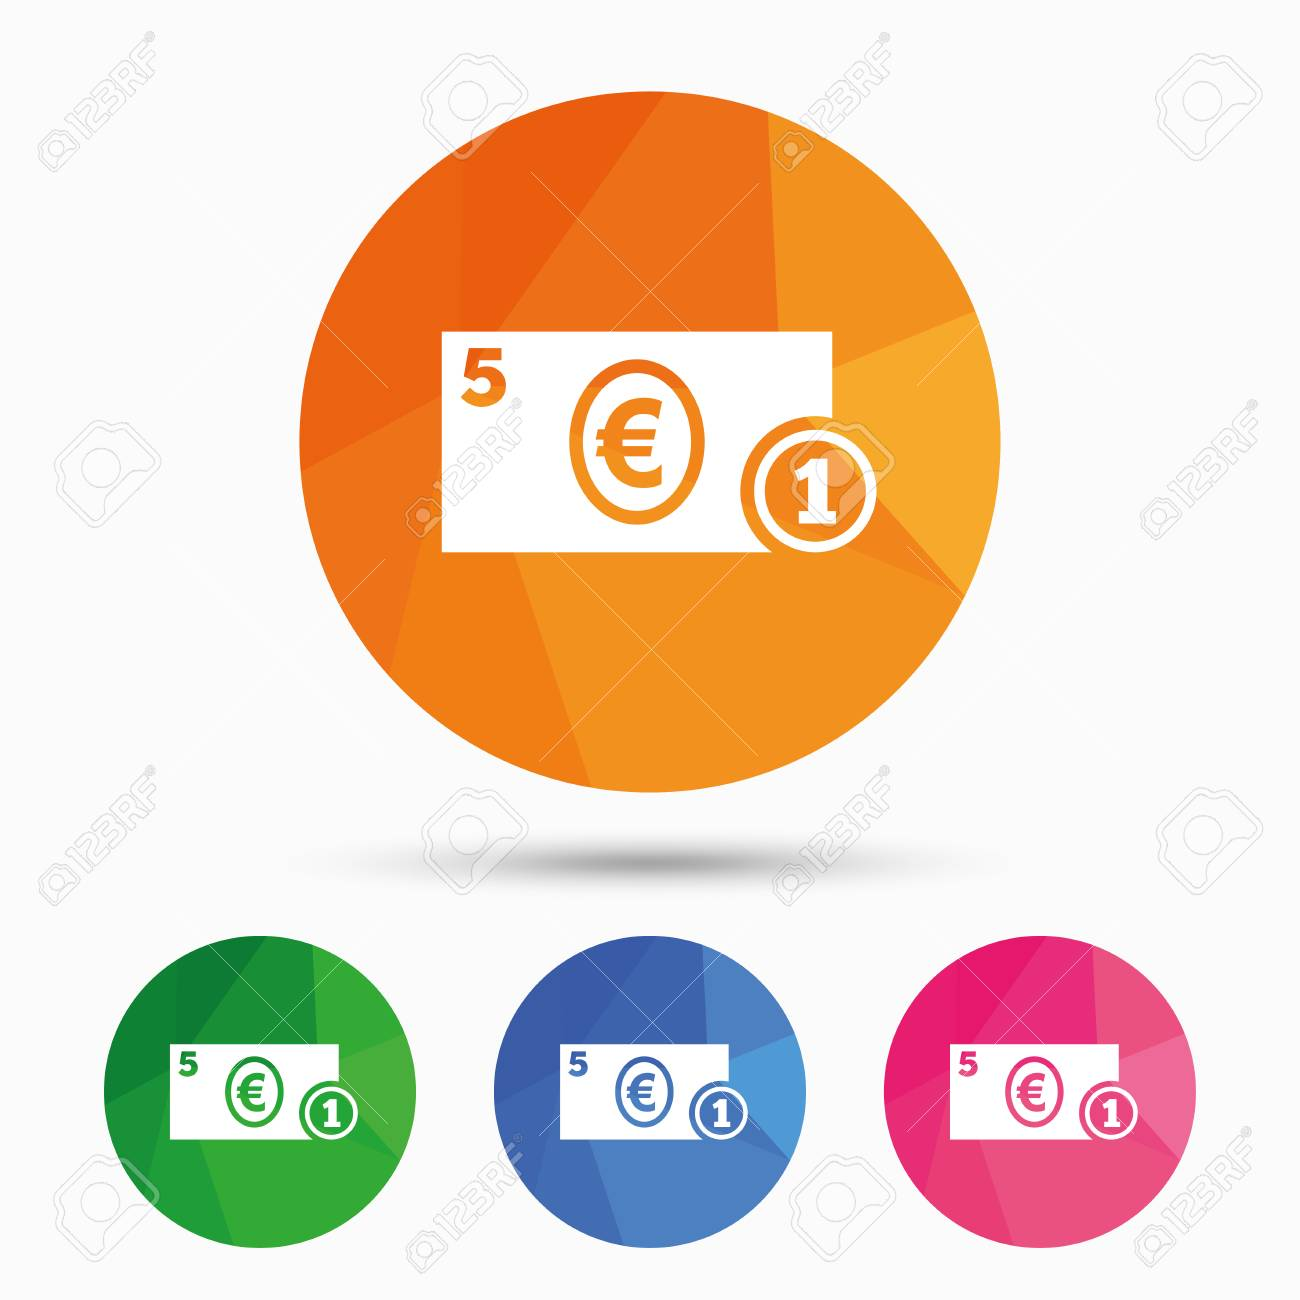 Cash sign icon euro money symbol eur coin and paper money cash sign icon euro money symbol eur coin and paper money triangular low buycottarizona Gallery